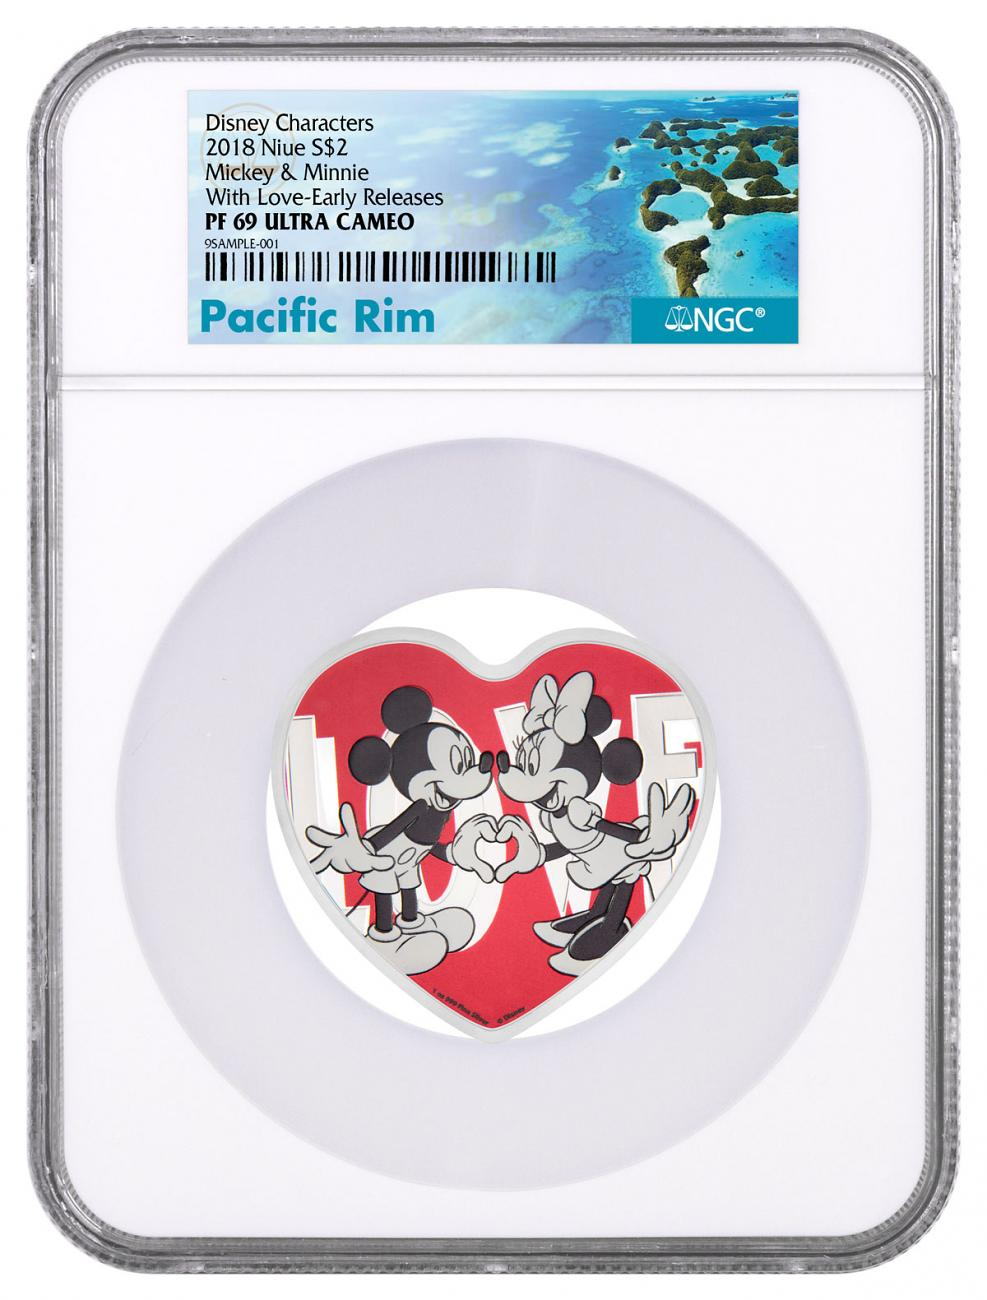 2018 Niue Disney Love Heart Shaped 1 oz Silver Proof $2 Coin NGC PF69 UC Exclusive Pacific Rim Label